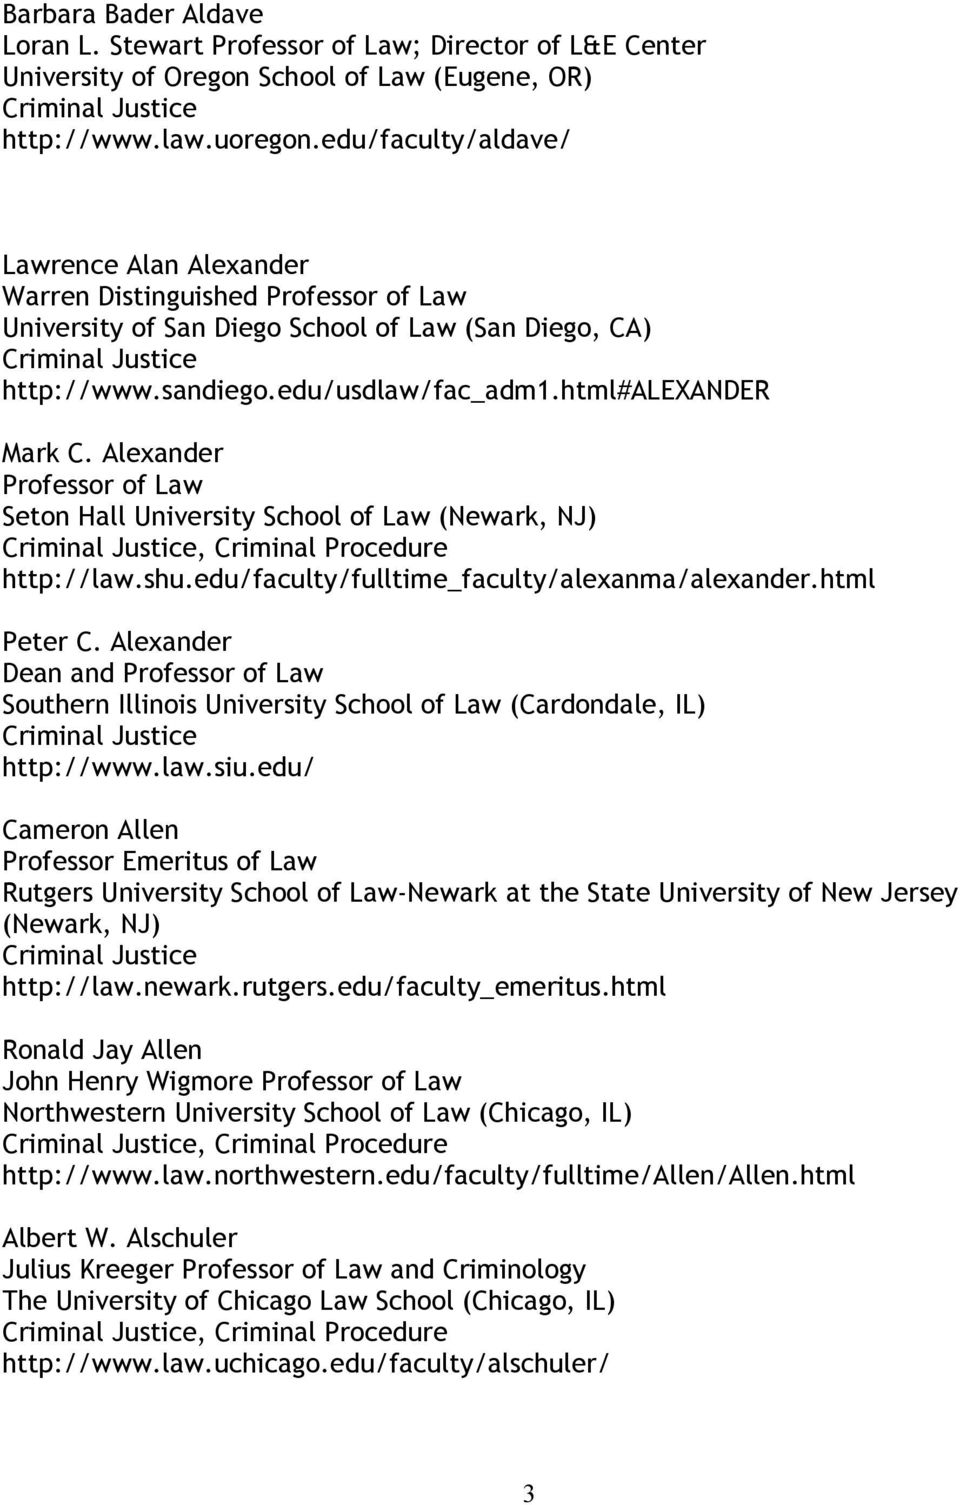 Alexander Seton Hall University School of Law (Newark, NJ), http://law.shu.edu/faculty/fulltime_faculty/alexanma/alexander.html Peter C.